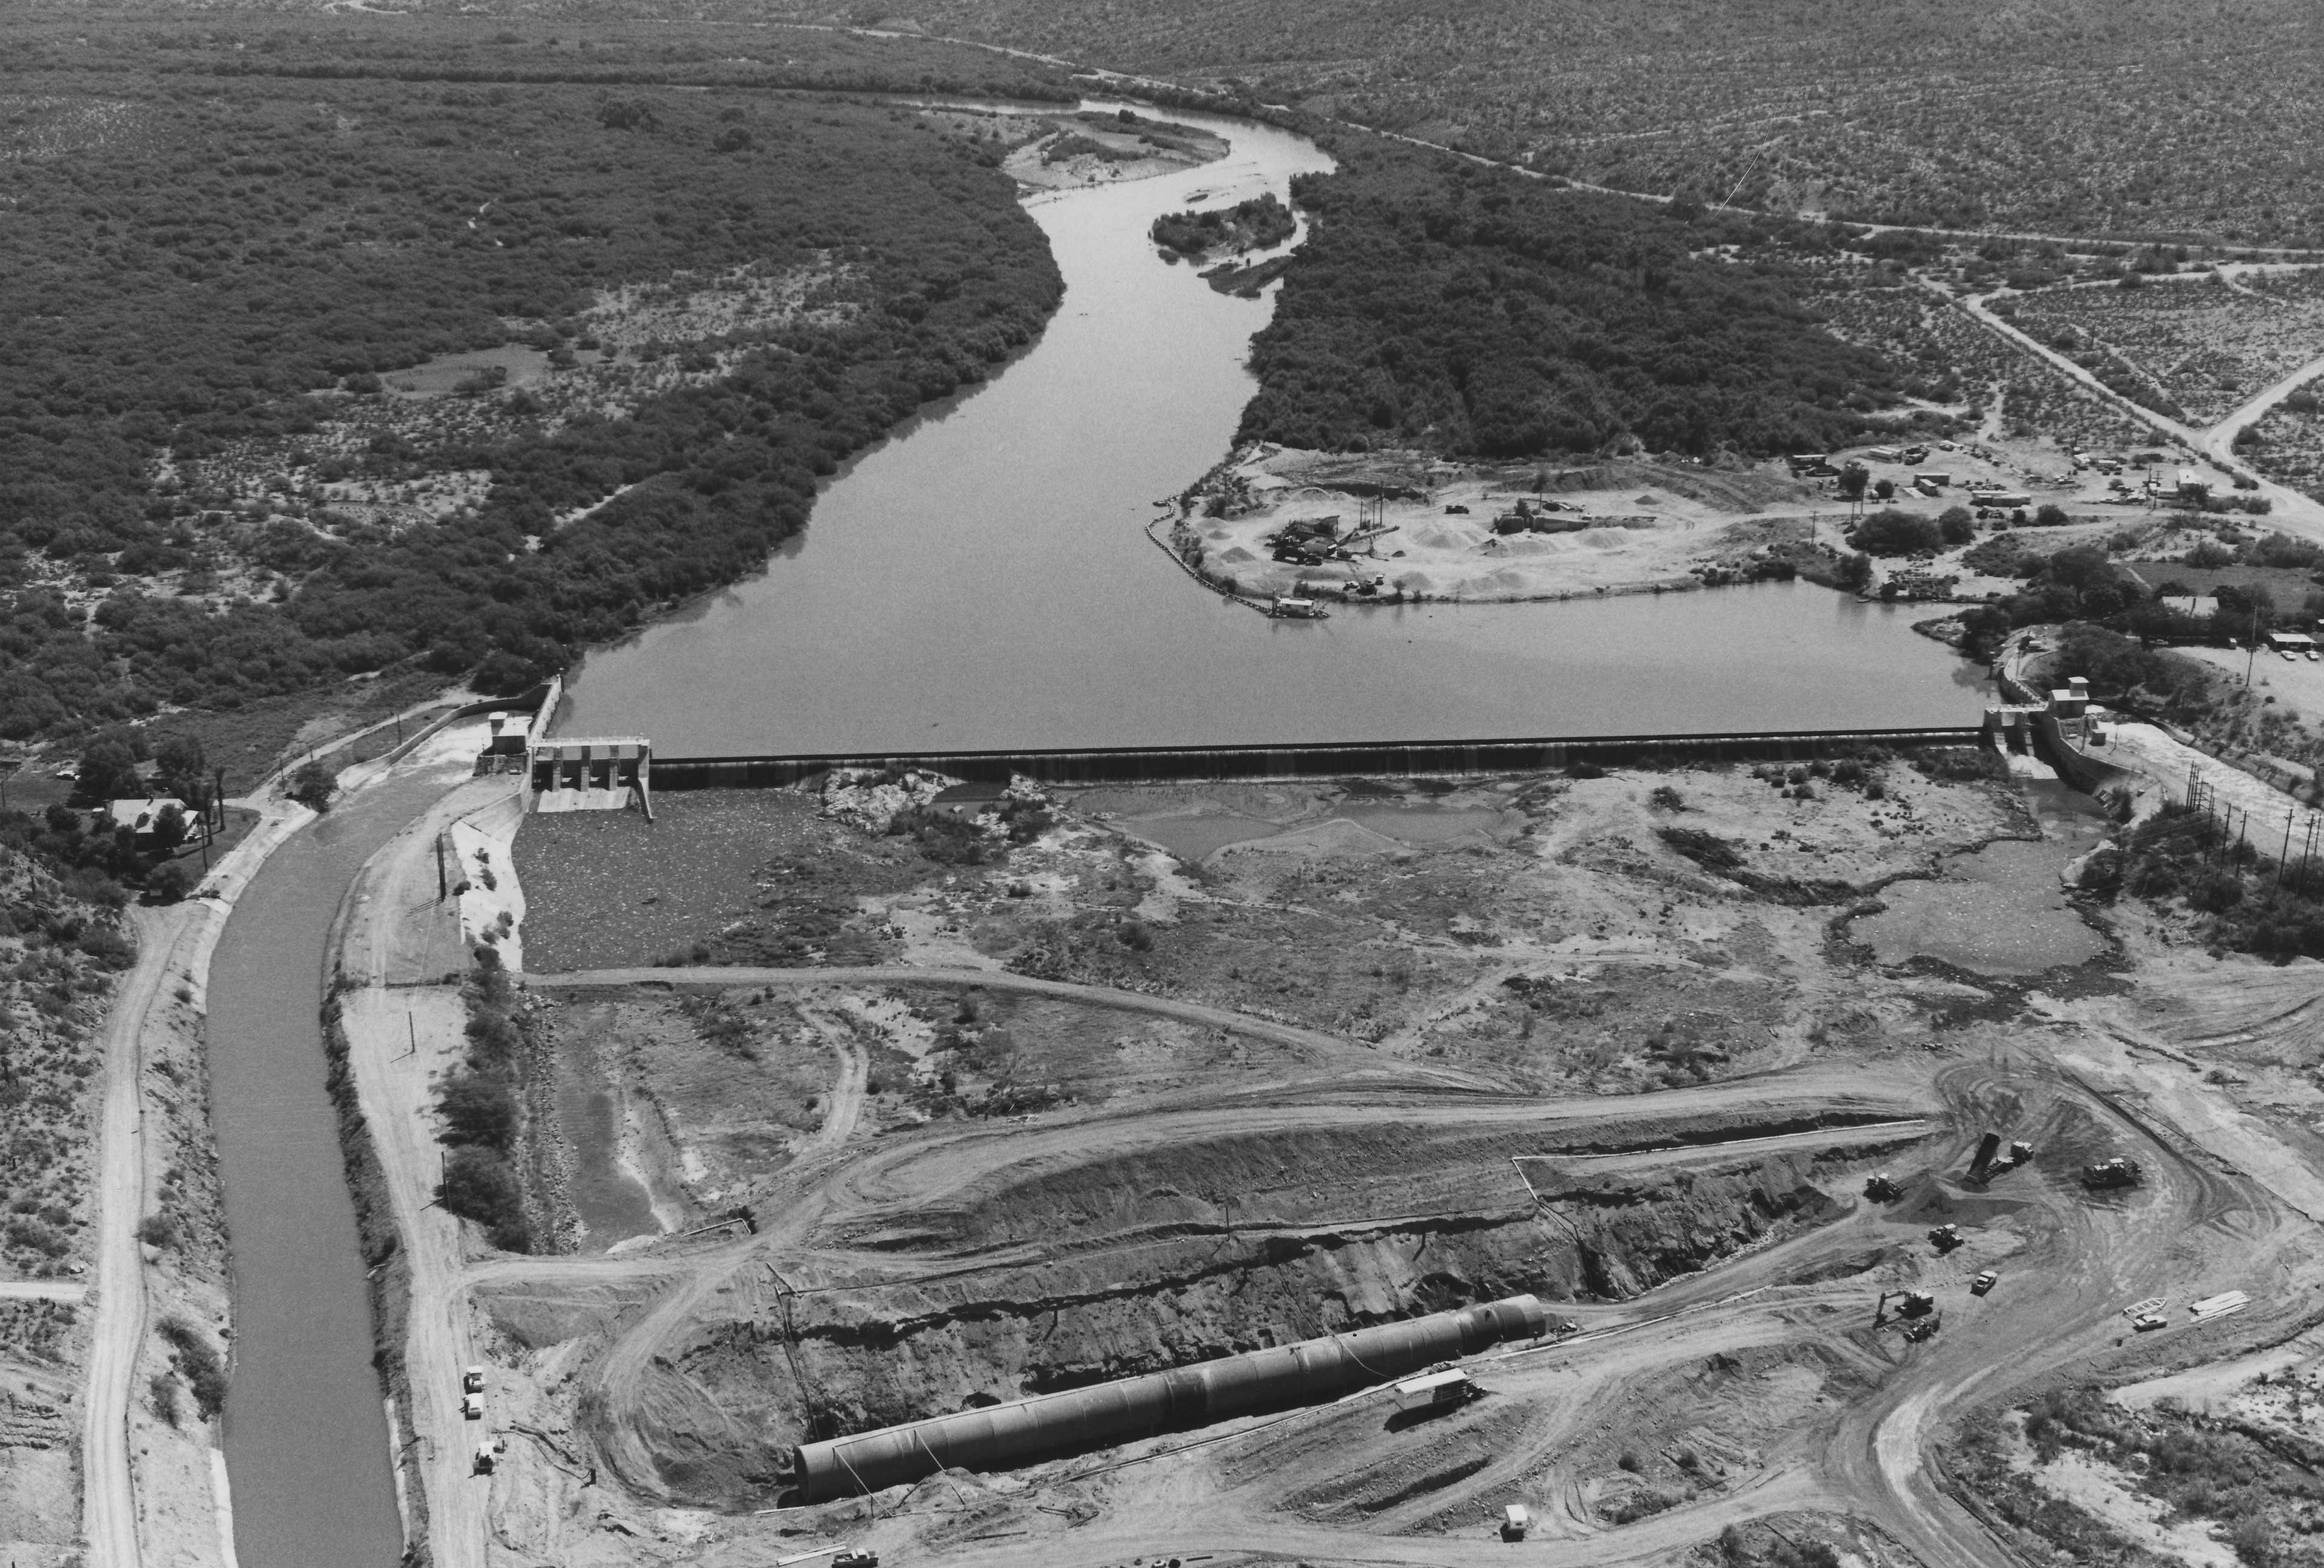 This photo from the late 70s shows Granite Reef Aqueduct and Central Arizona Project canals.